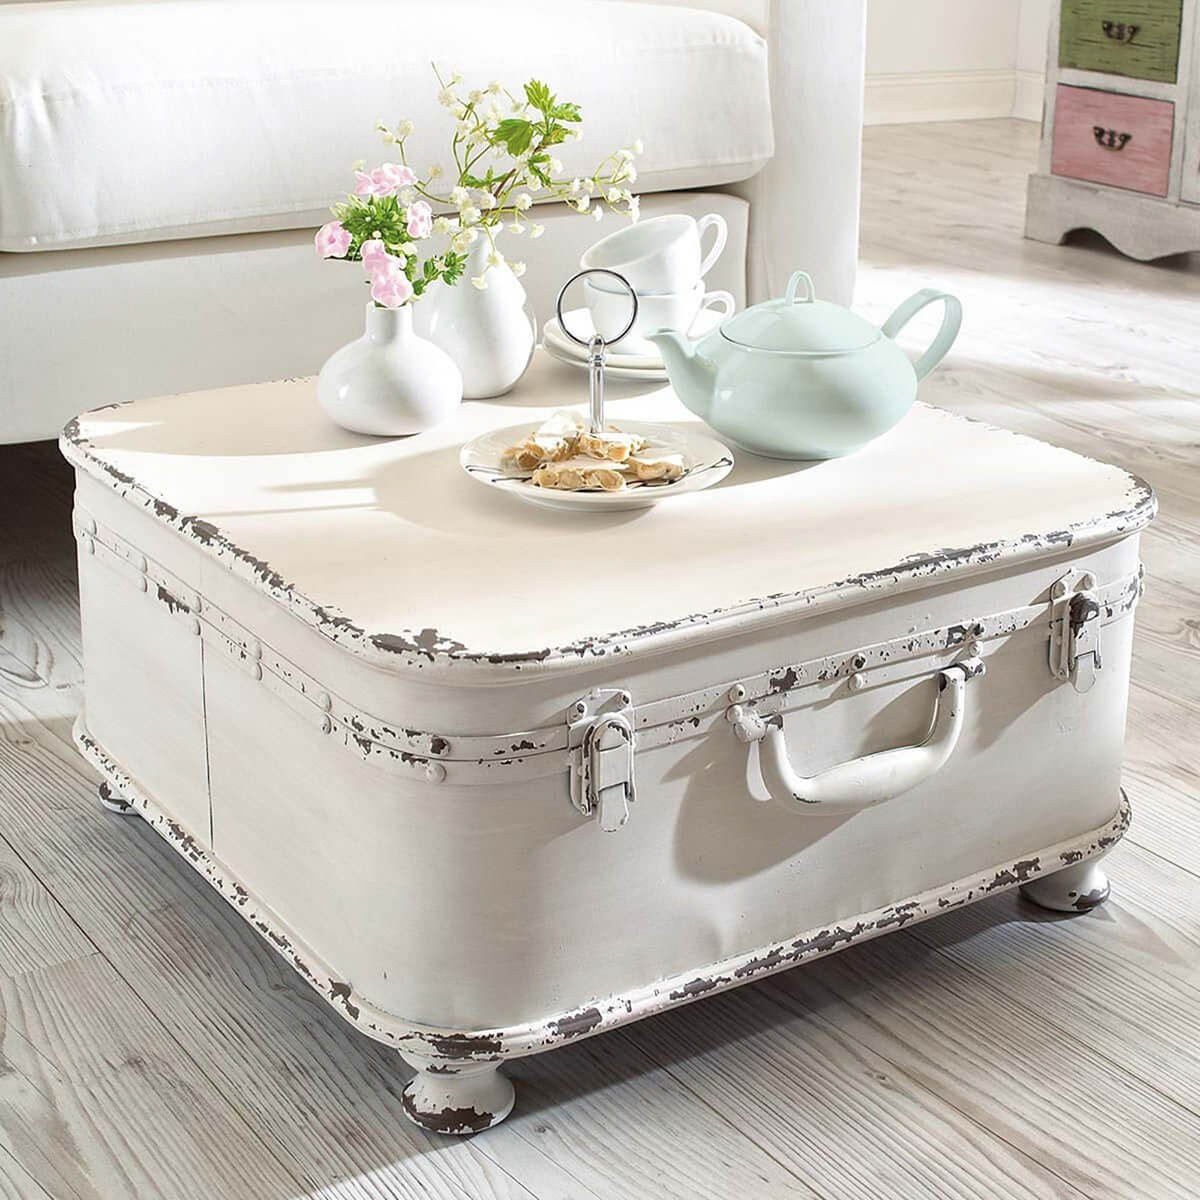 Ordinaire This Stylishly Made Shabby Chic Coffee Table Is A Beautiful Combination Of  Rich Details And A Raw, Unfinished Finish. The Resembles A Chest Or  Suitcase And ...